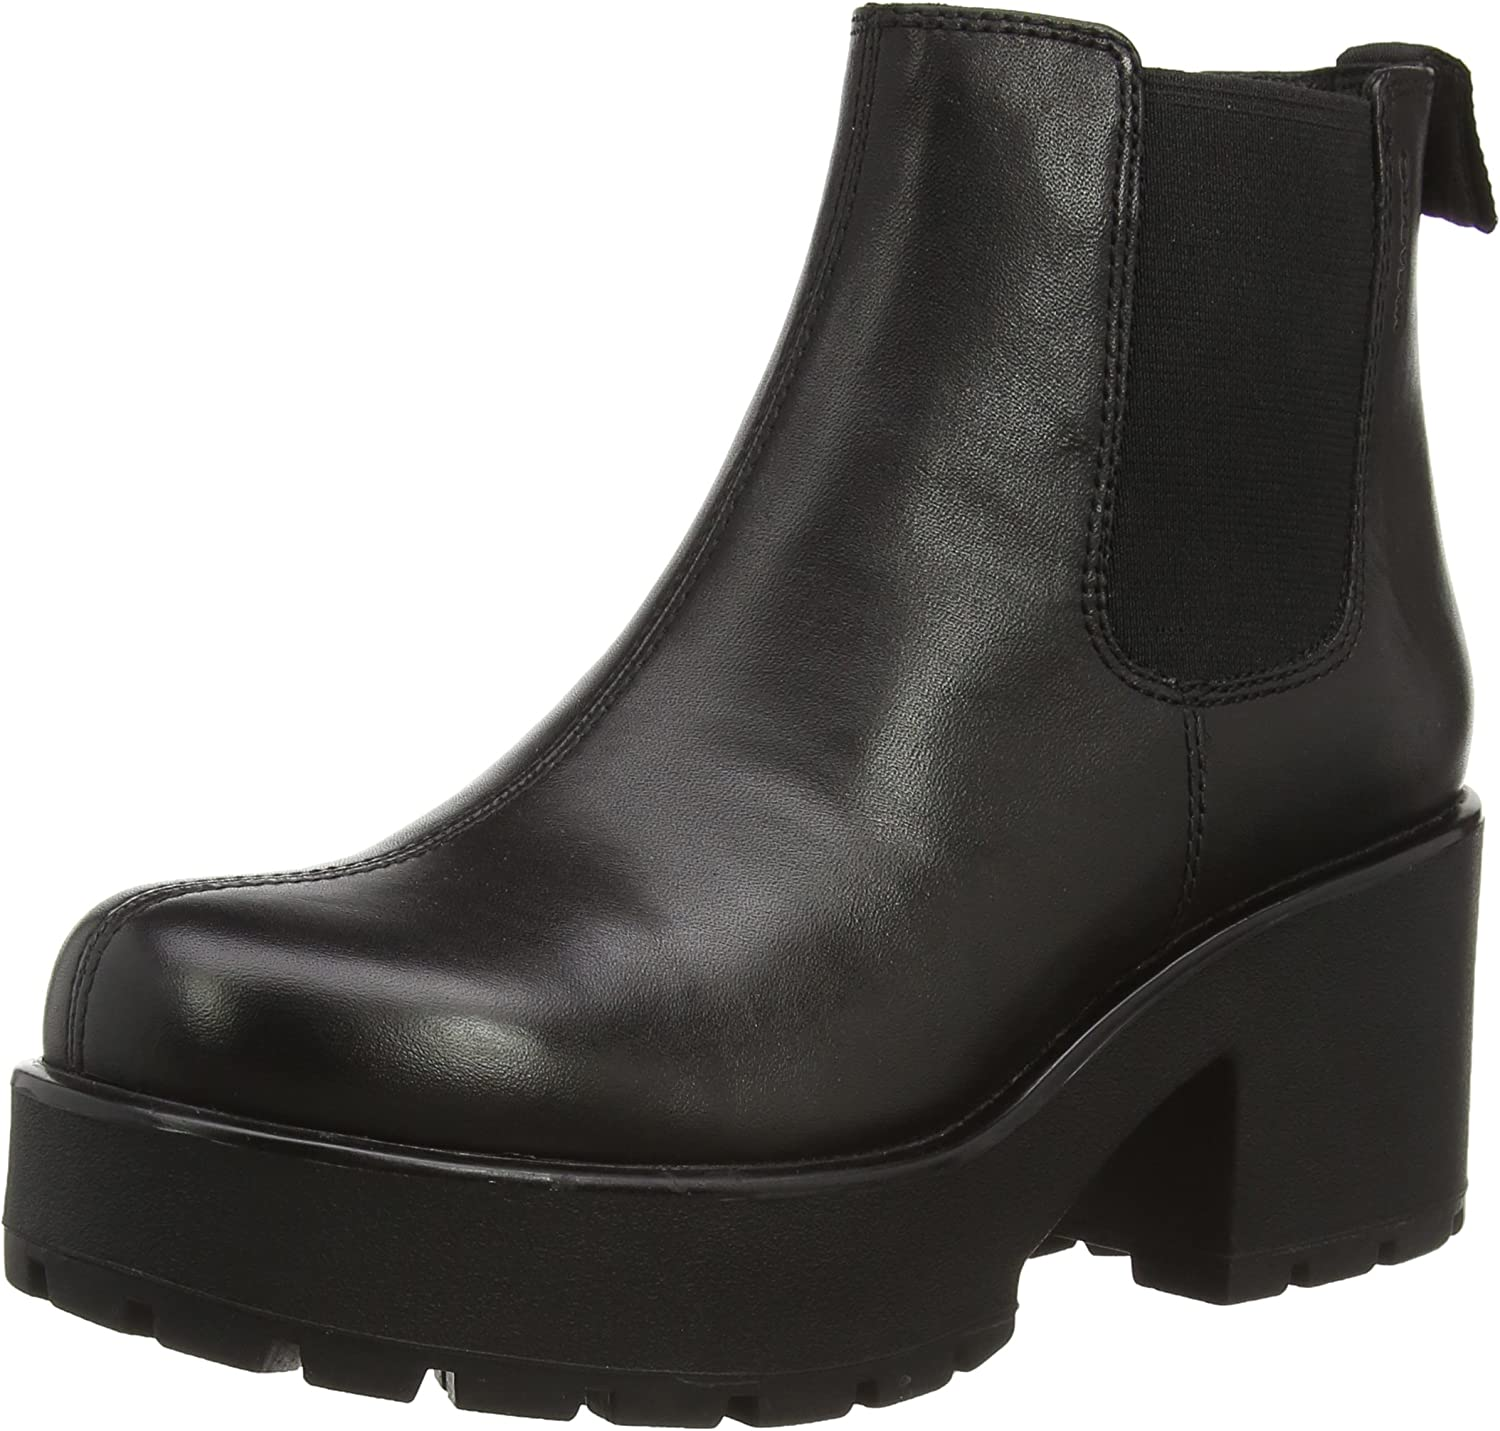 Vagabond Women's Dioon Ankle Boots